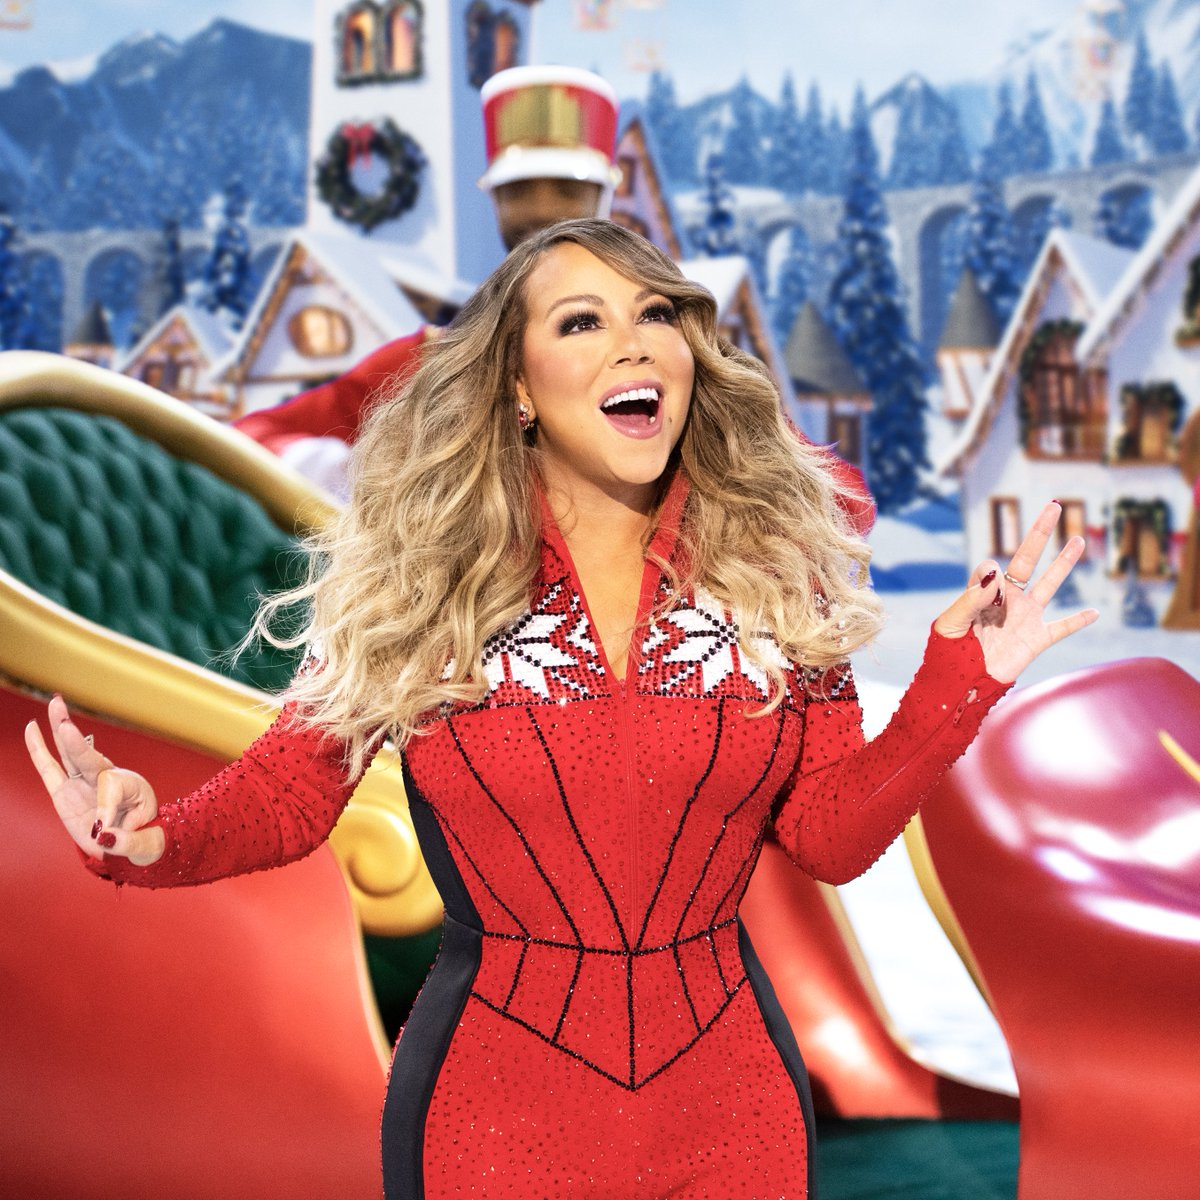 One week to go!! 🎅🏽🎁💝 #MariahsMagicalChristmas 🎄🎄🎄 12/4 on @AppleTV